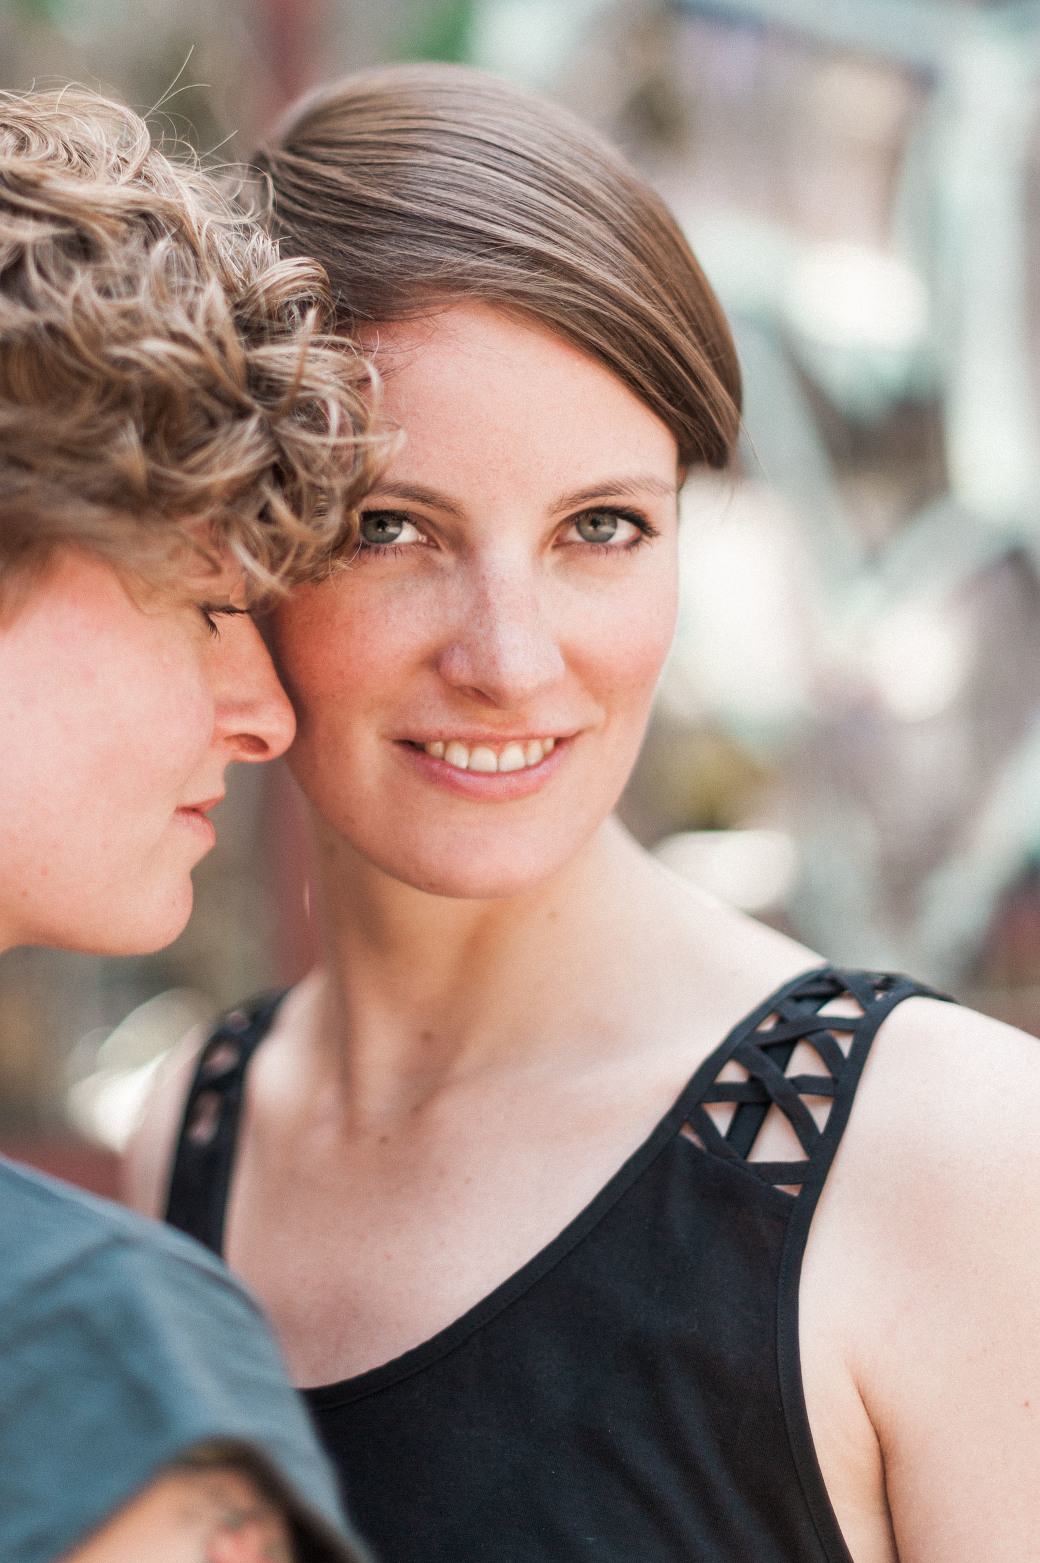 Ana & Stefanie - A Lesbian Portrait Session in Berlin photographed by LGBT Portland Wedding Photographer Briana Morrison